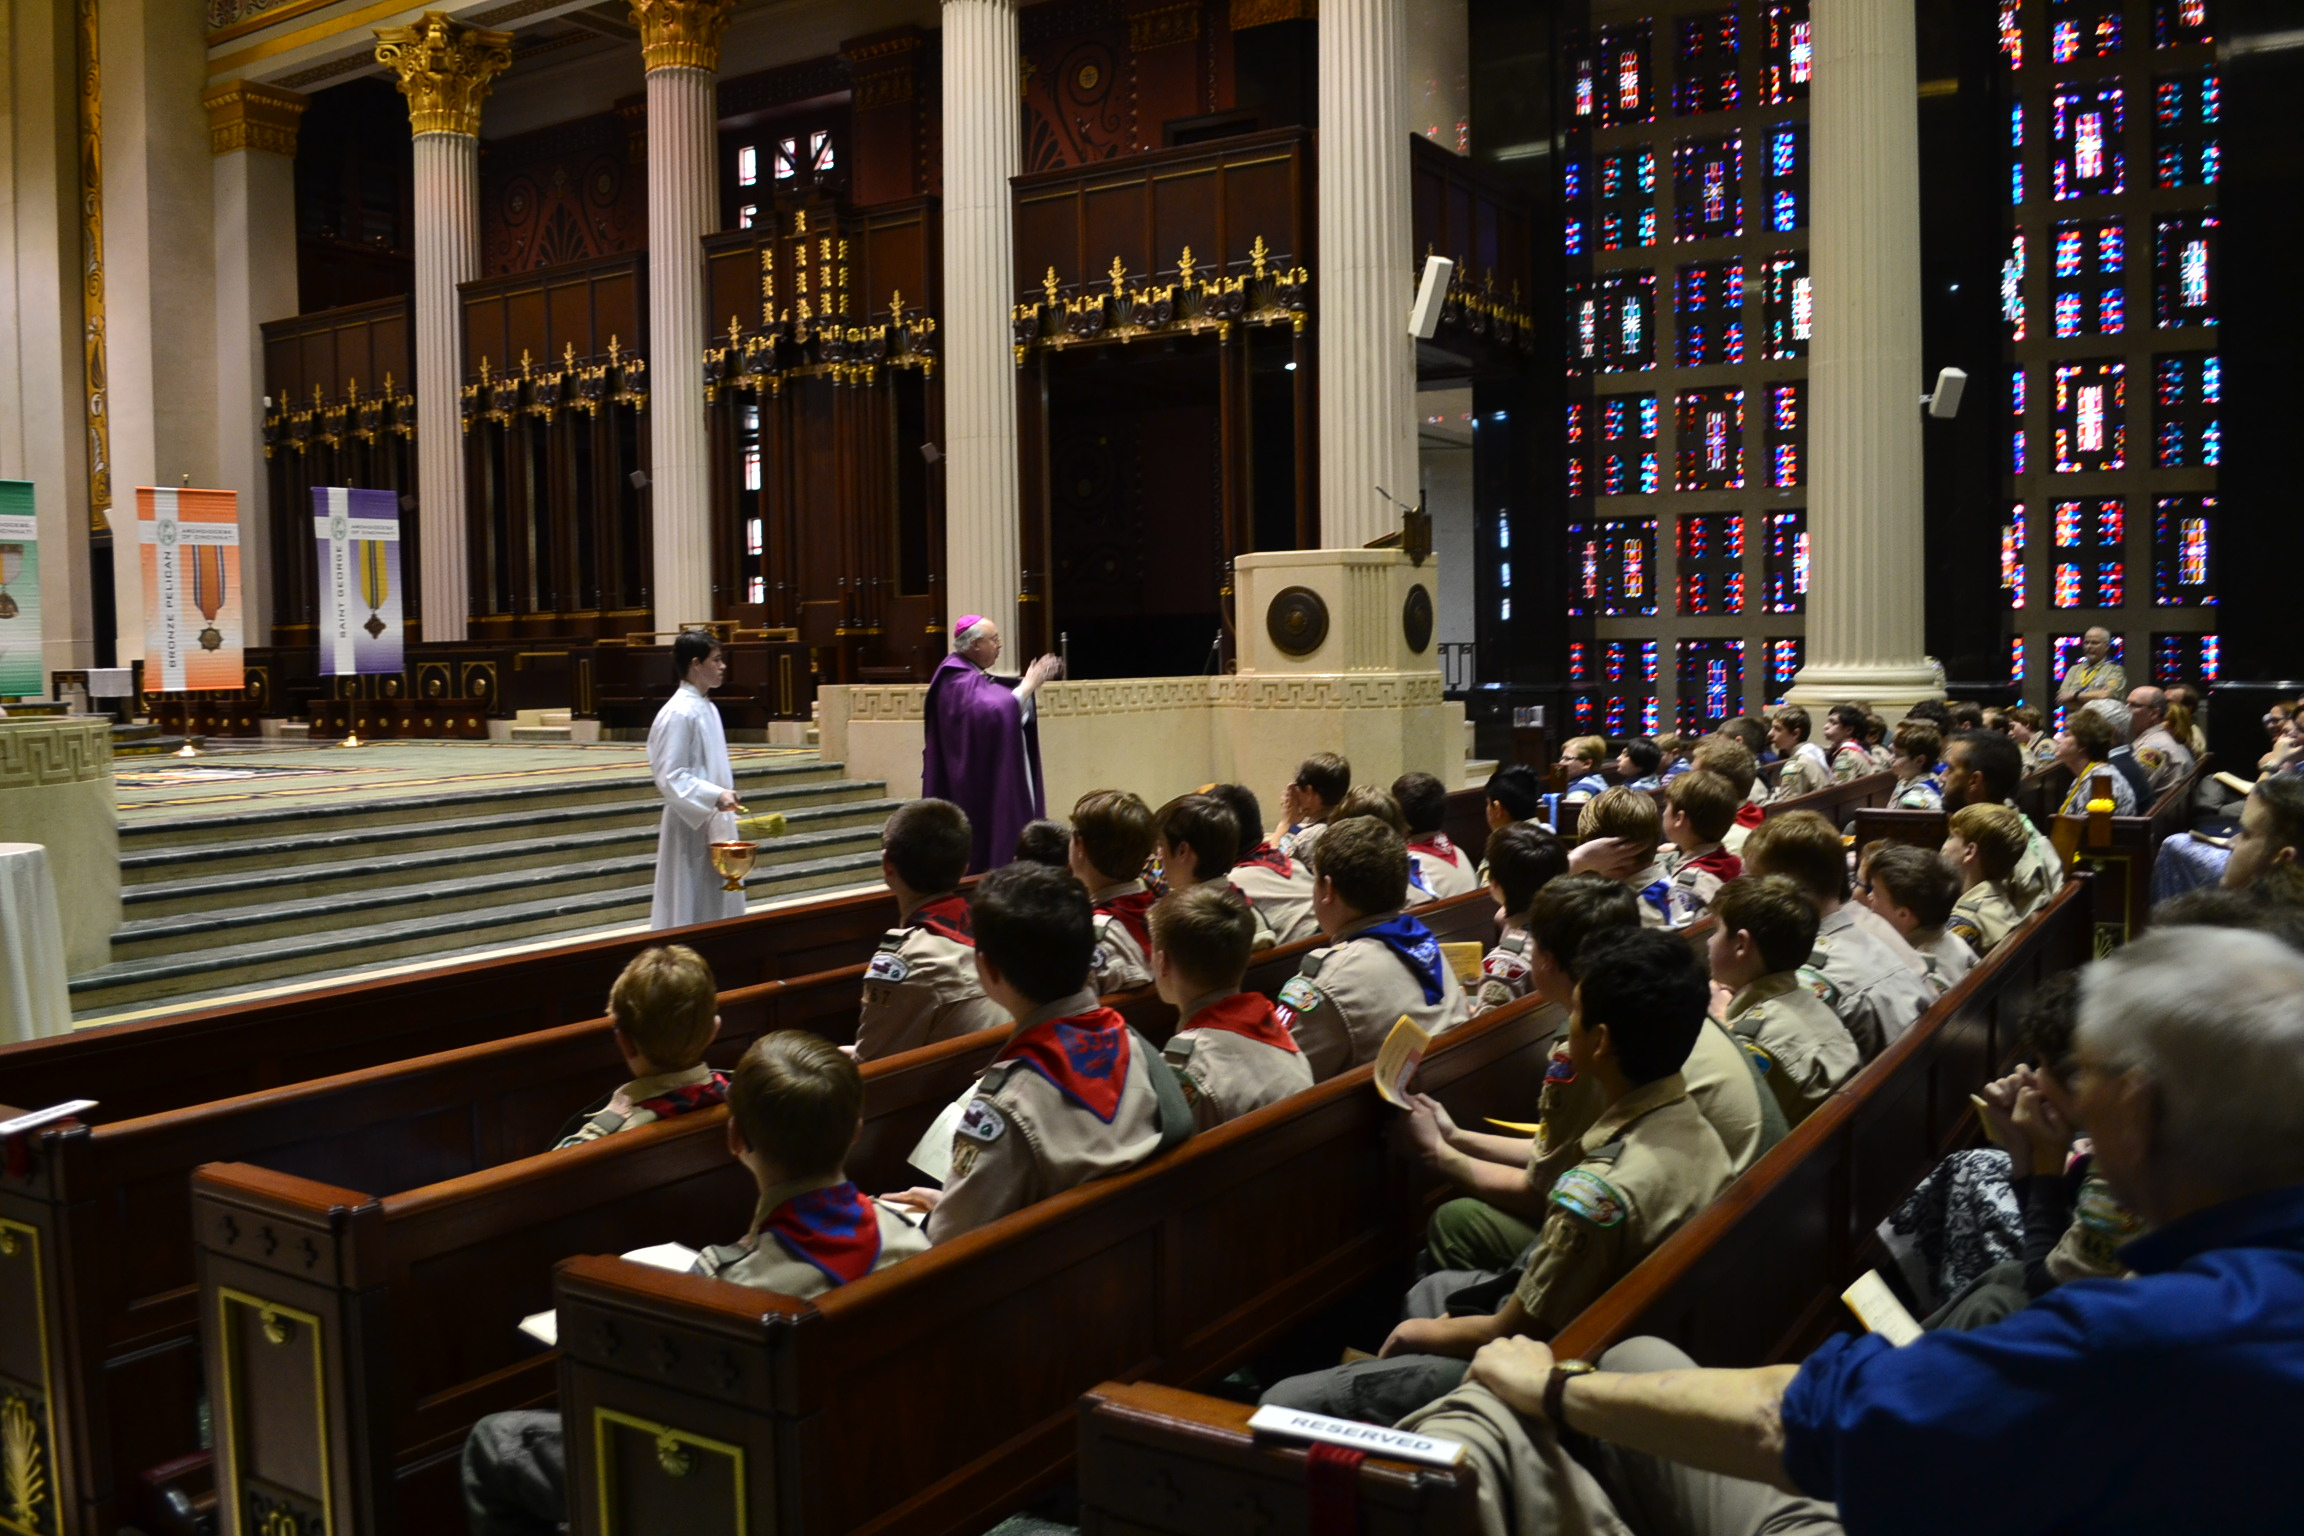 Bishop Joseph Binzer addresses the participants and family members at the 2018 Religious Emblems Ceremony (CT Photo/Greg Hartman)